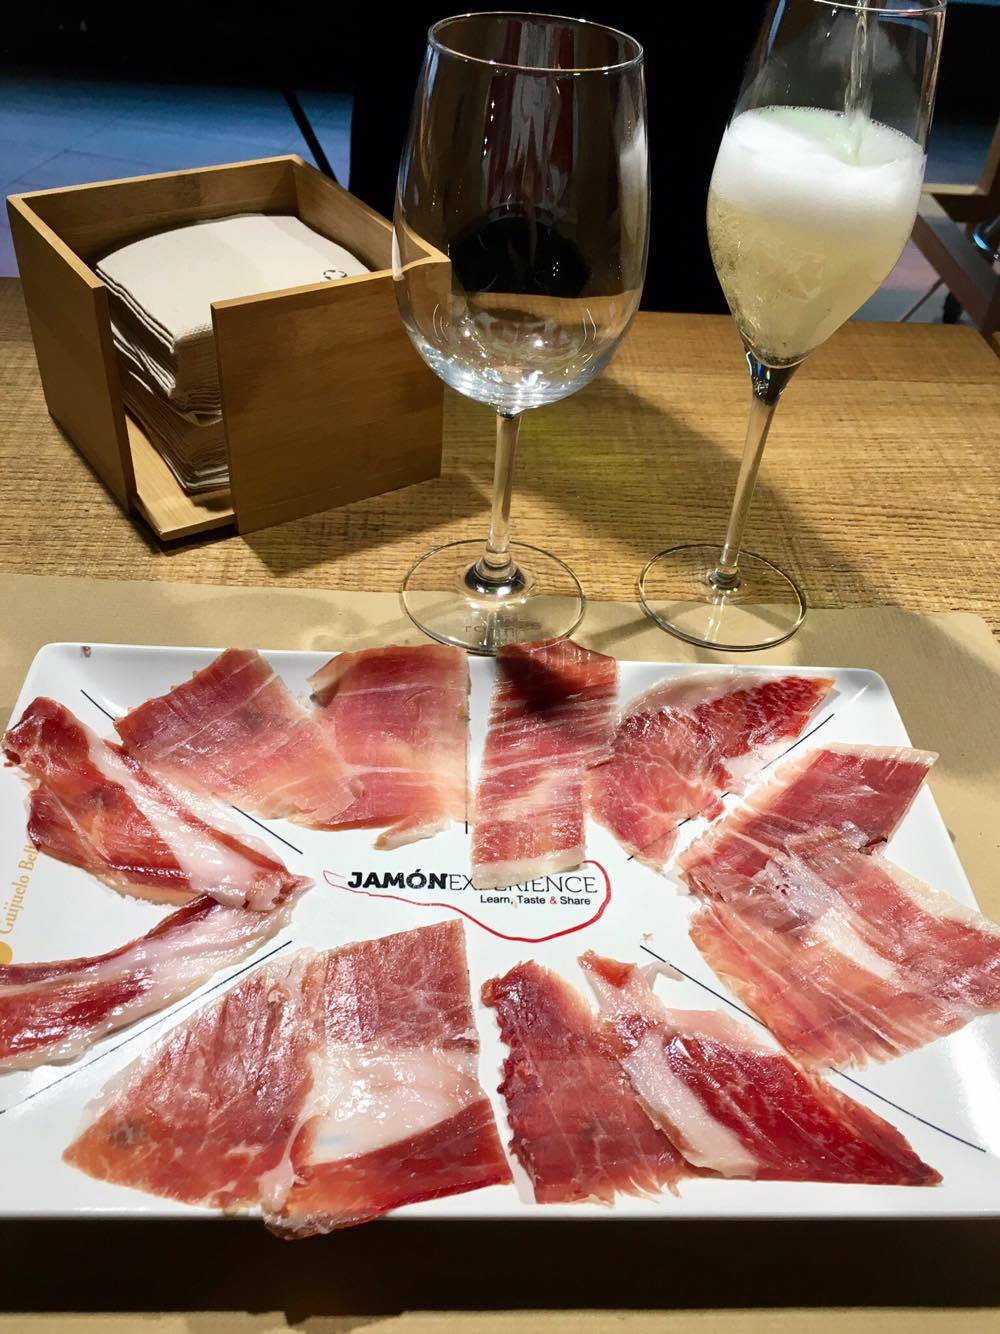 The four types of ham at the bottom are bellota, from acorn-fed pigs. The top left is serrano, and the right normal Ibérico. Notice how the bellota hams have glossier texture compared with the other two.